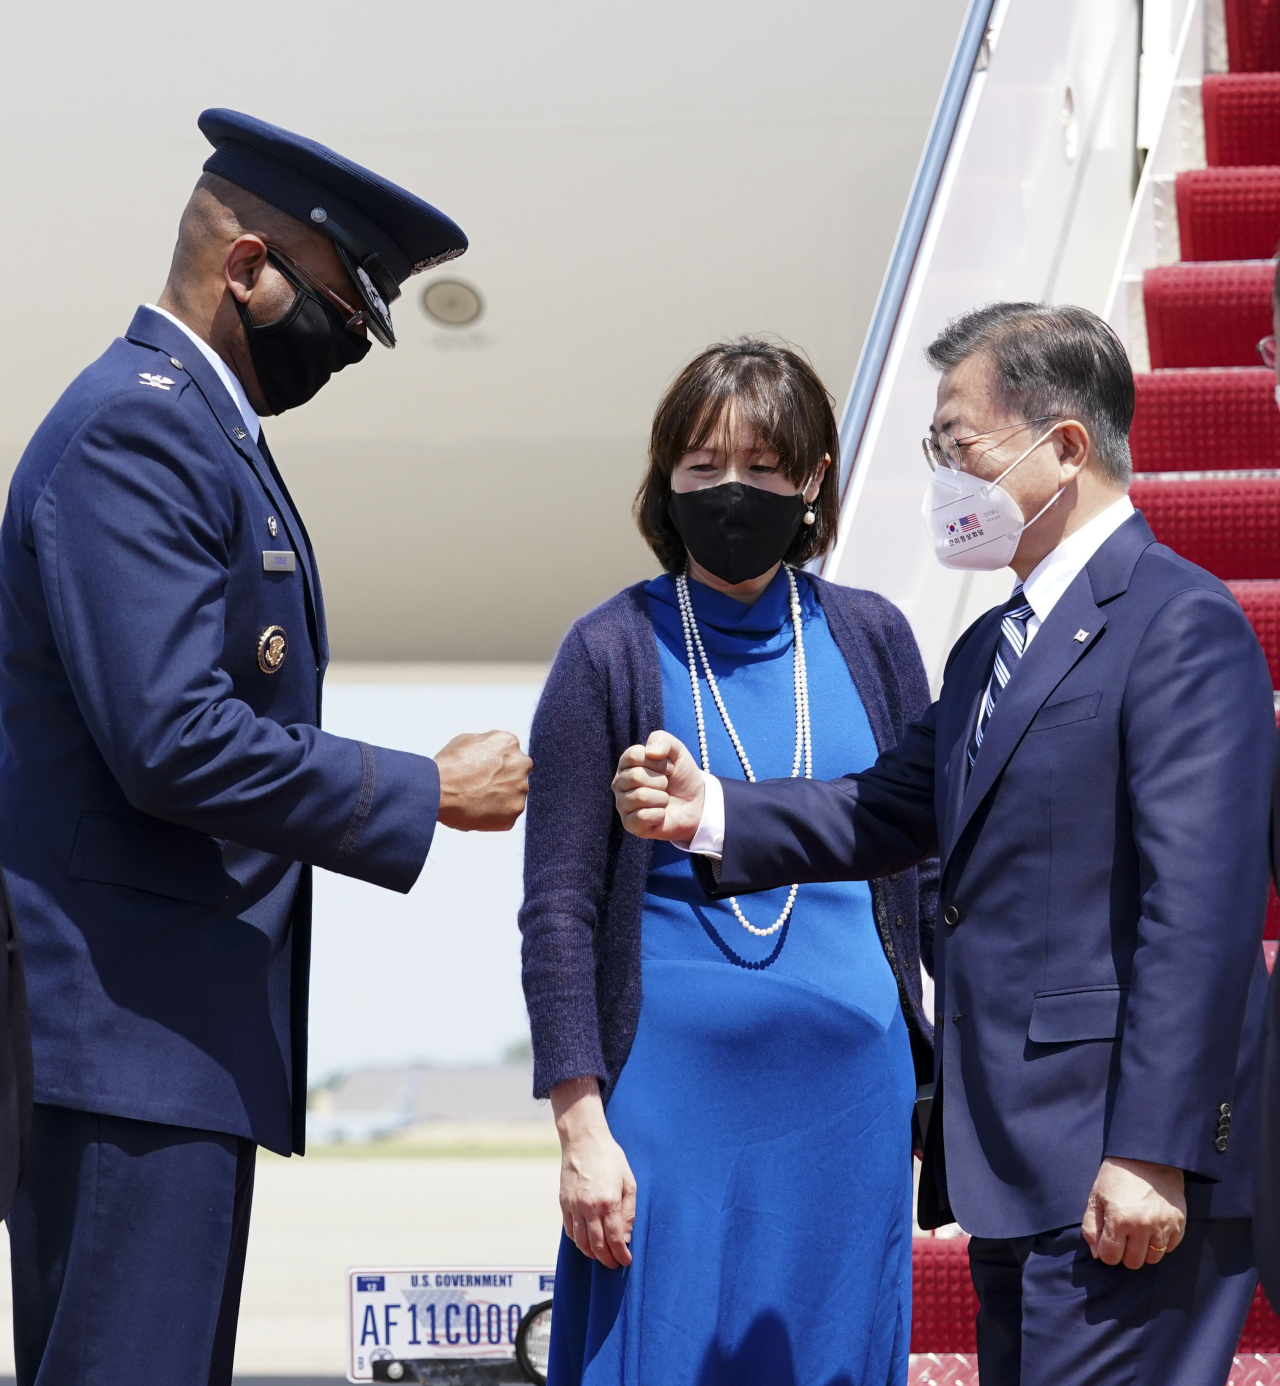 South Korean President Moon Jae-in (R) bumps fists with a US military official upon arriving at Andrews Air Force Base in Maryland on Wednesday. (Yonhap)